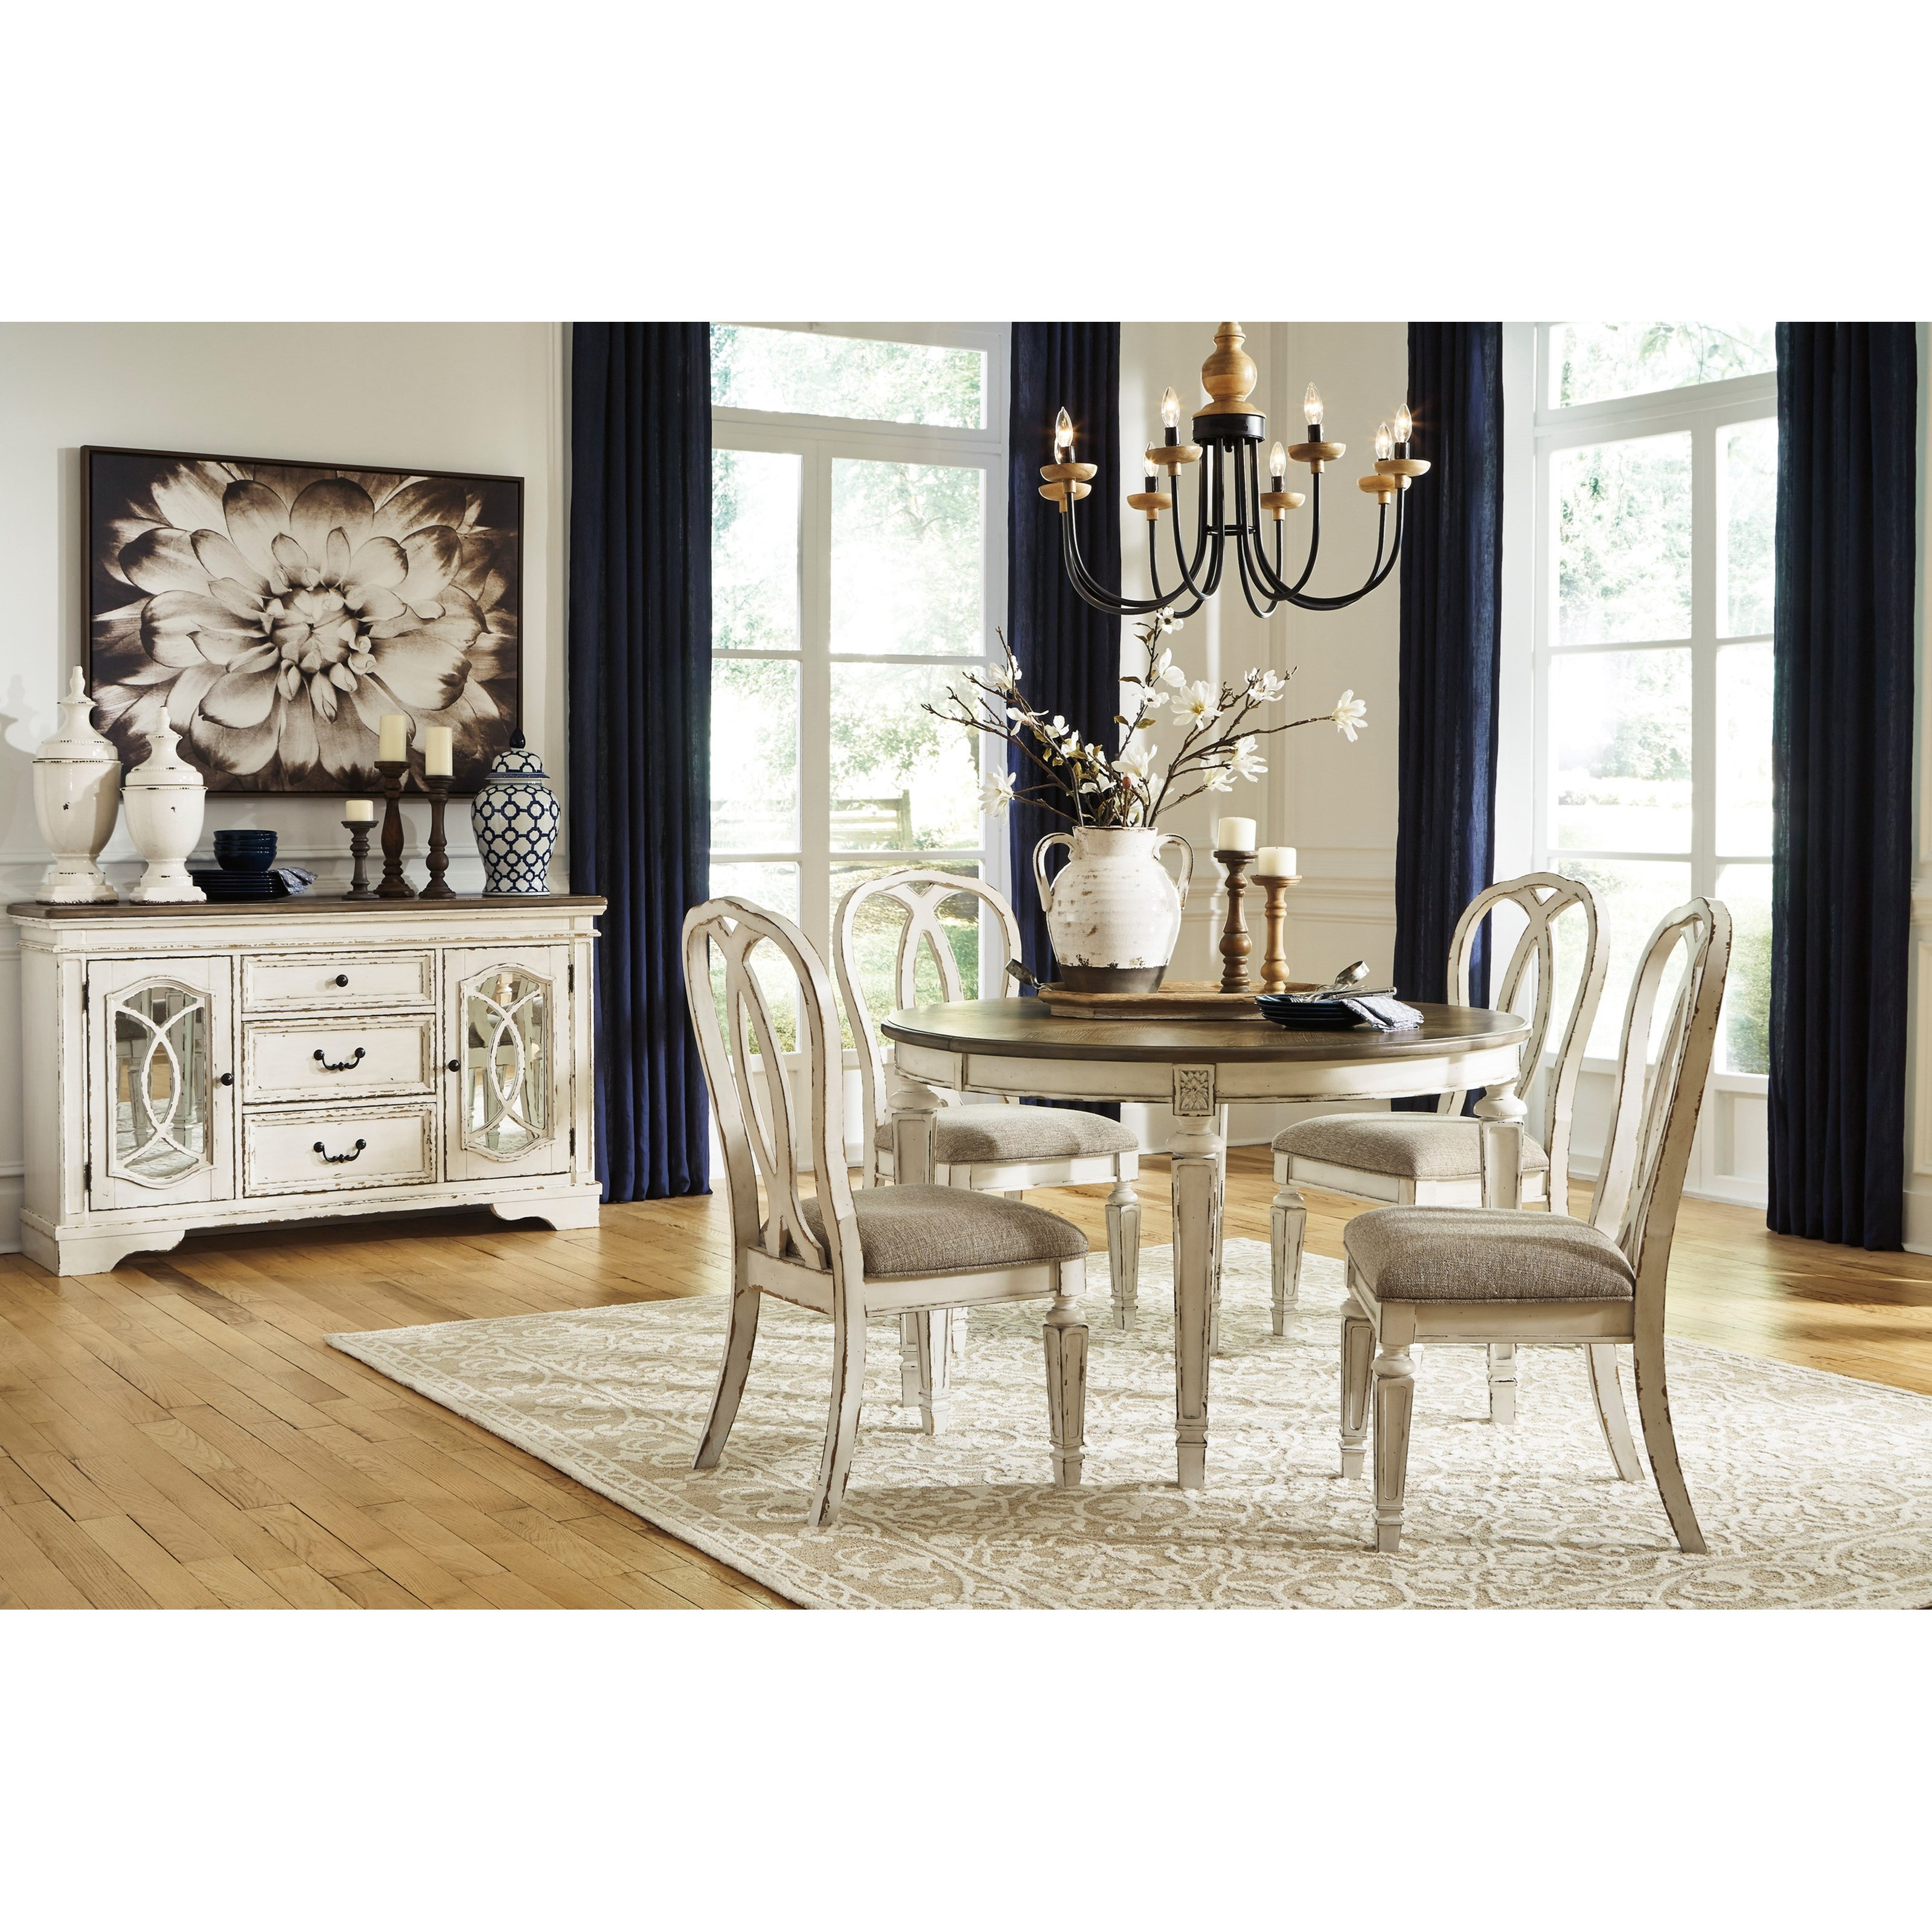 Signature Design By Ashley Realyn Casual Dining Room Group